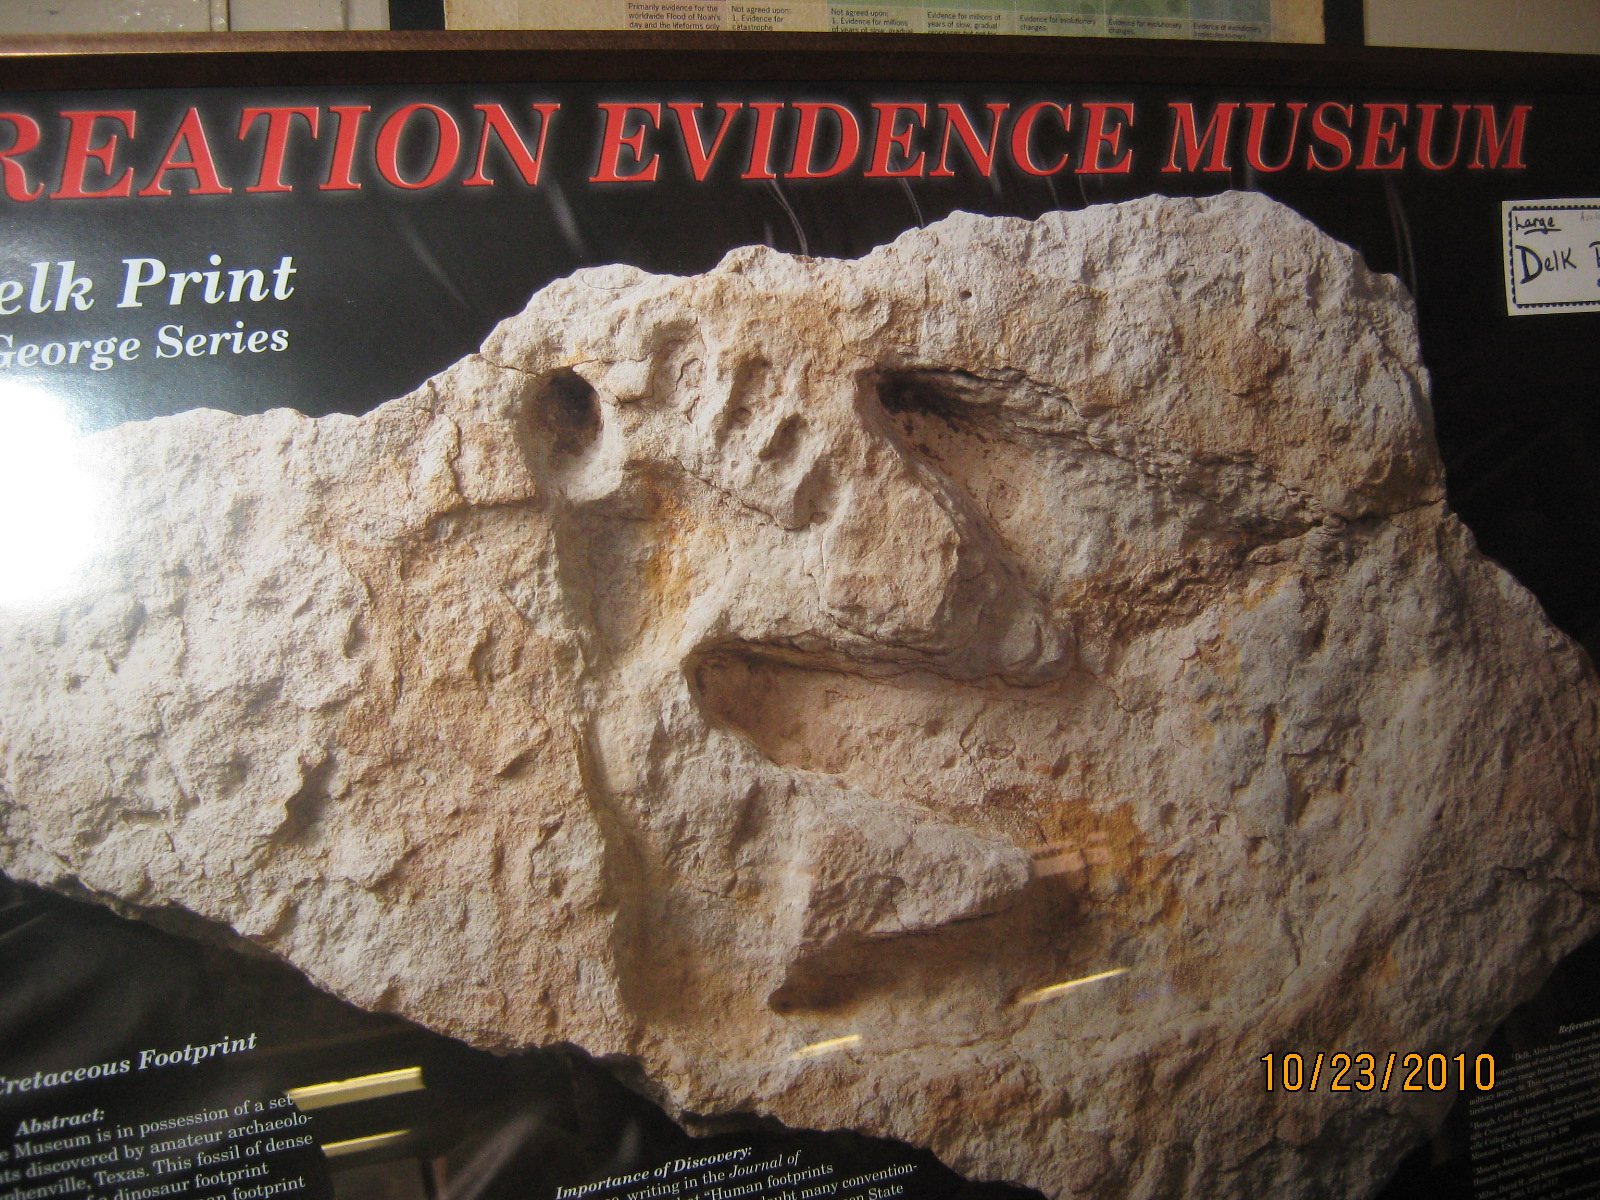 Taylor Trail: Evidence that Dinosaurs and Humans coexisted  |Paluxy Evidence